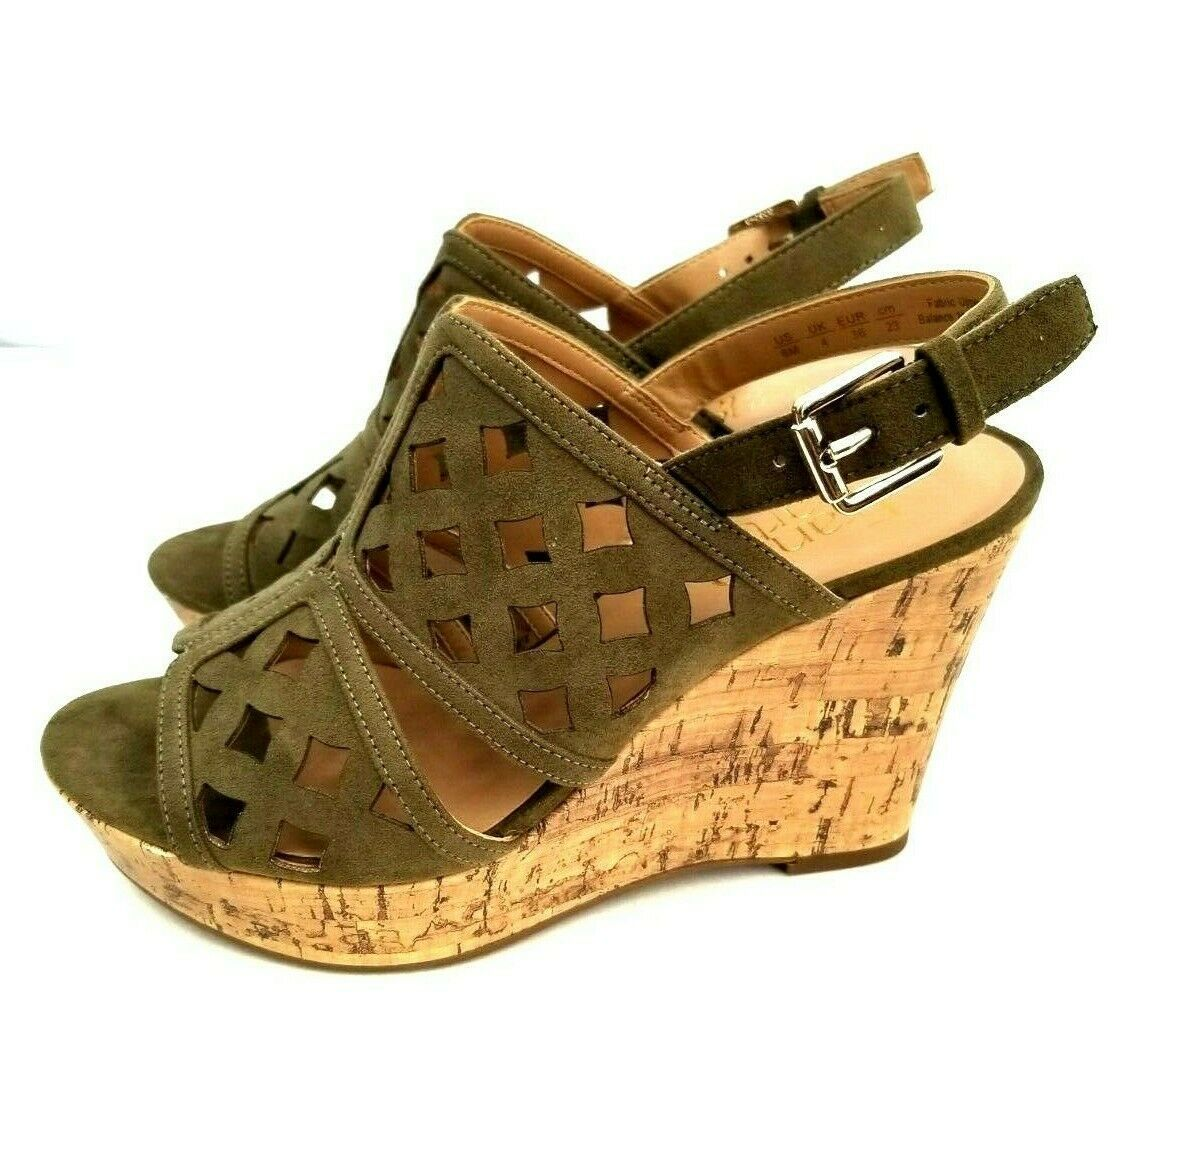 Franco Sarto Womens Shea Sandals Size 6M Cork Wedges Olive Green Suede Peep Toe